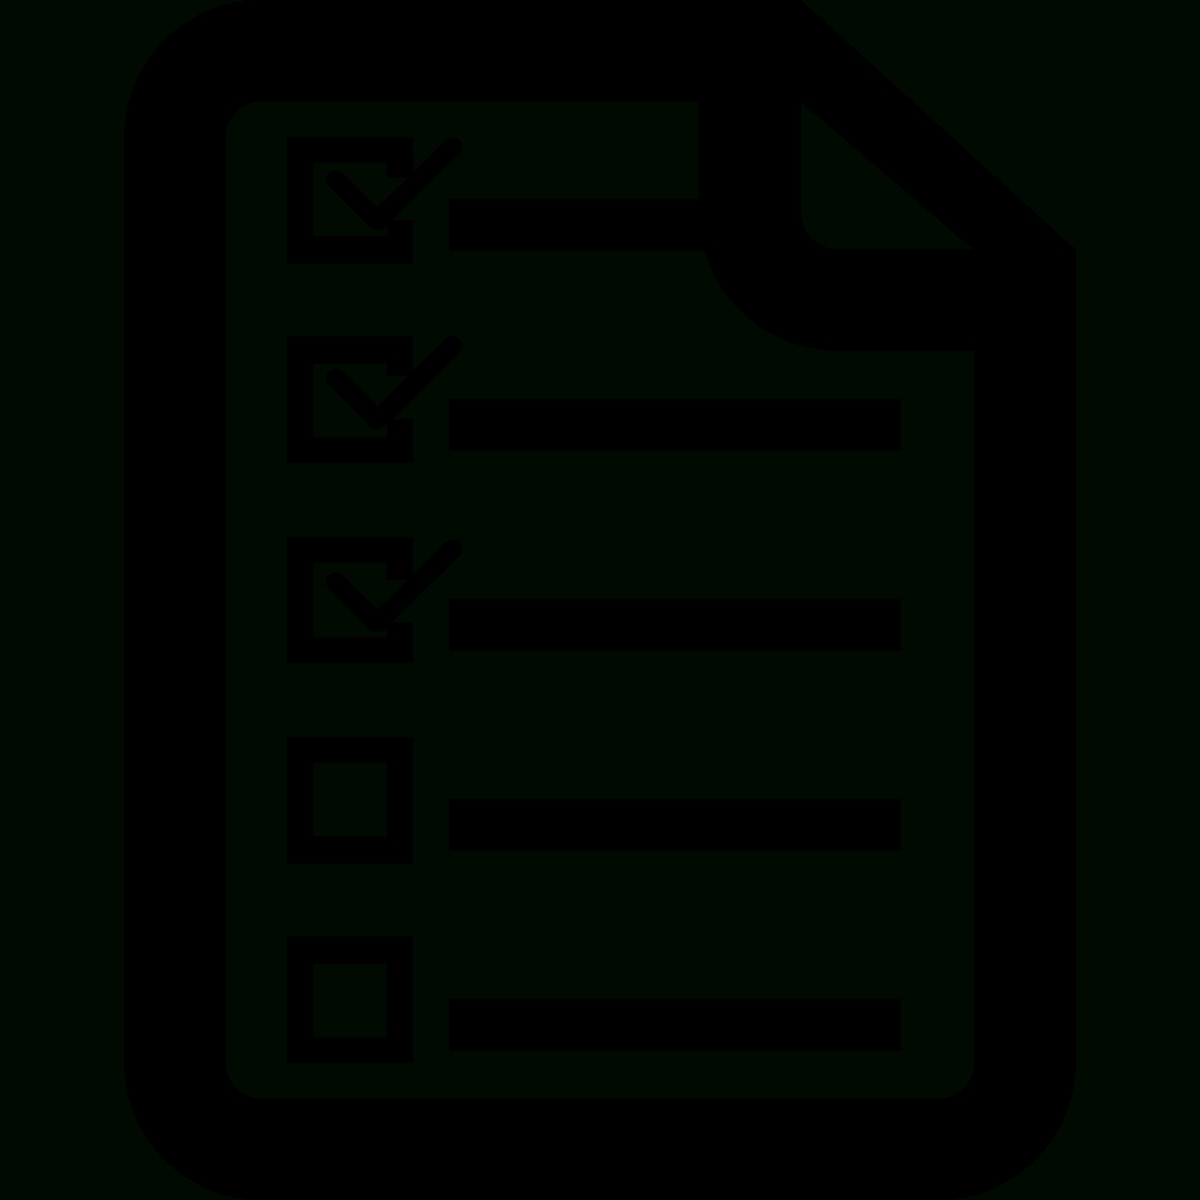 Checklist-Icon-Checklist-Icon-Png-List-Icon-7 - Taylor Pearson regarding Checklist Icon Transparent 25946